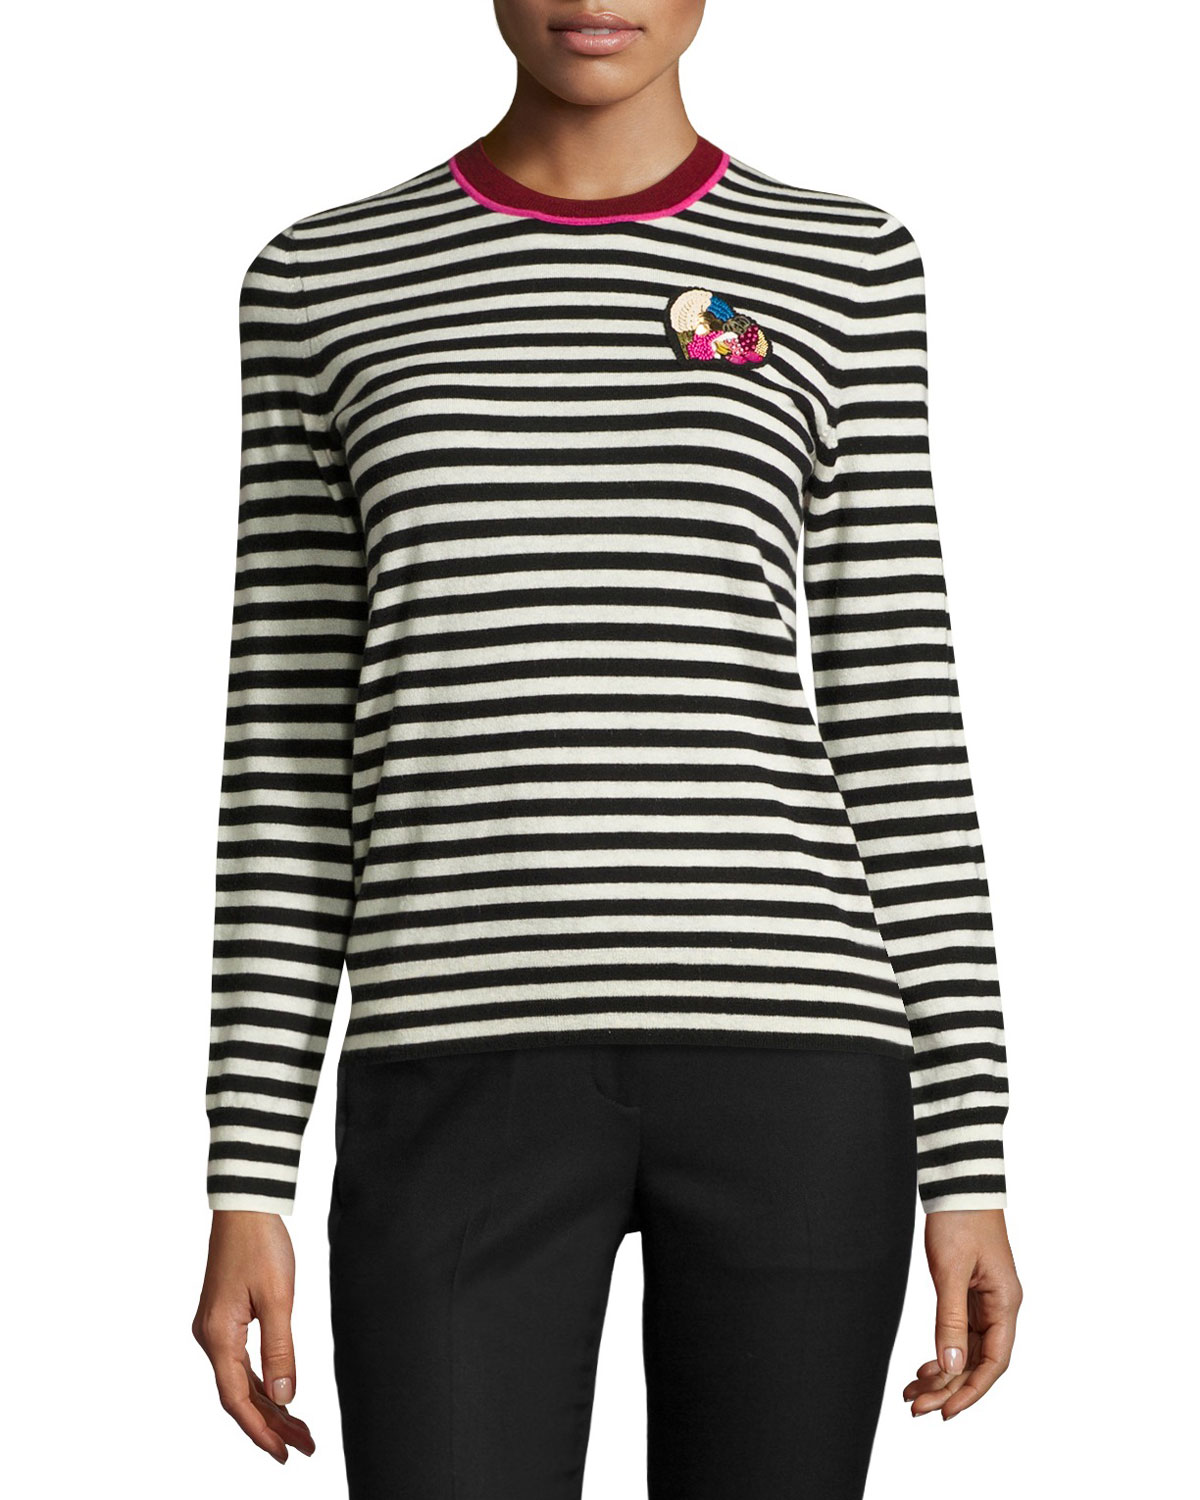 Stripe-Print Heart-Patch Cashmere Sweater, Black/White